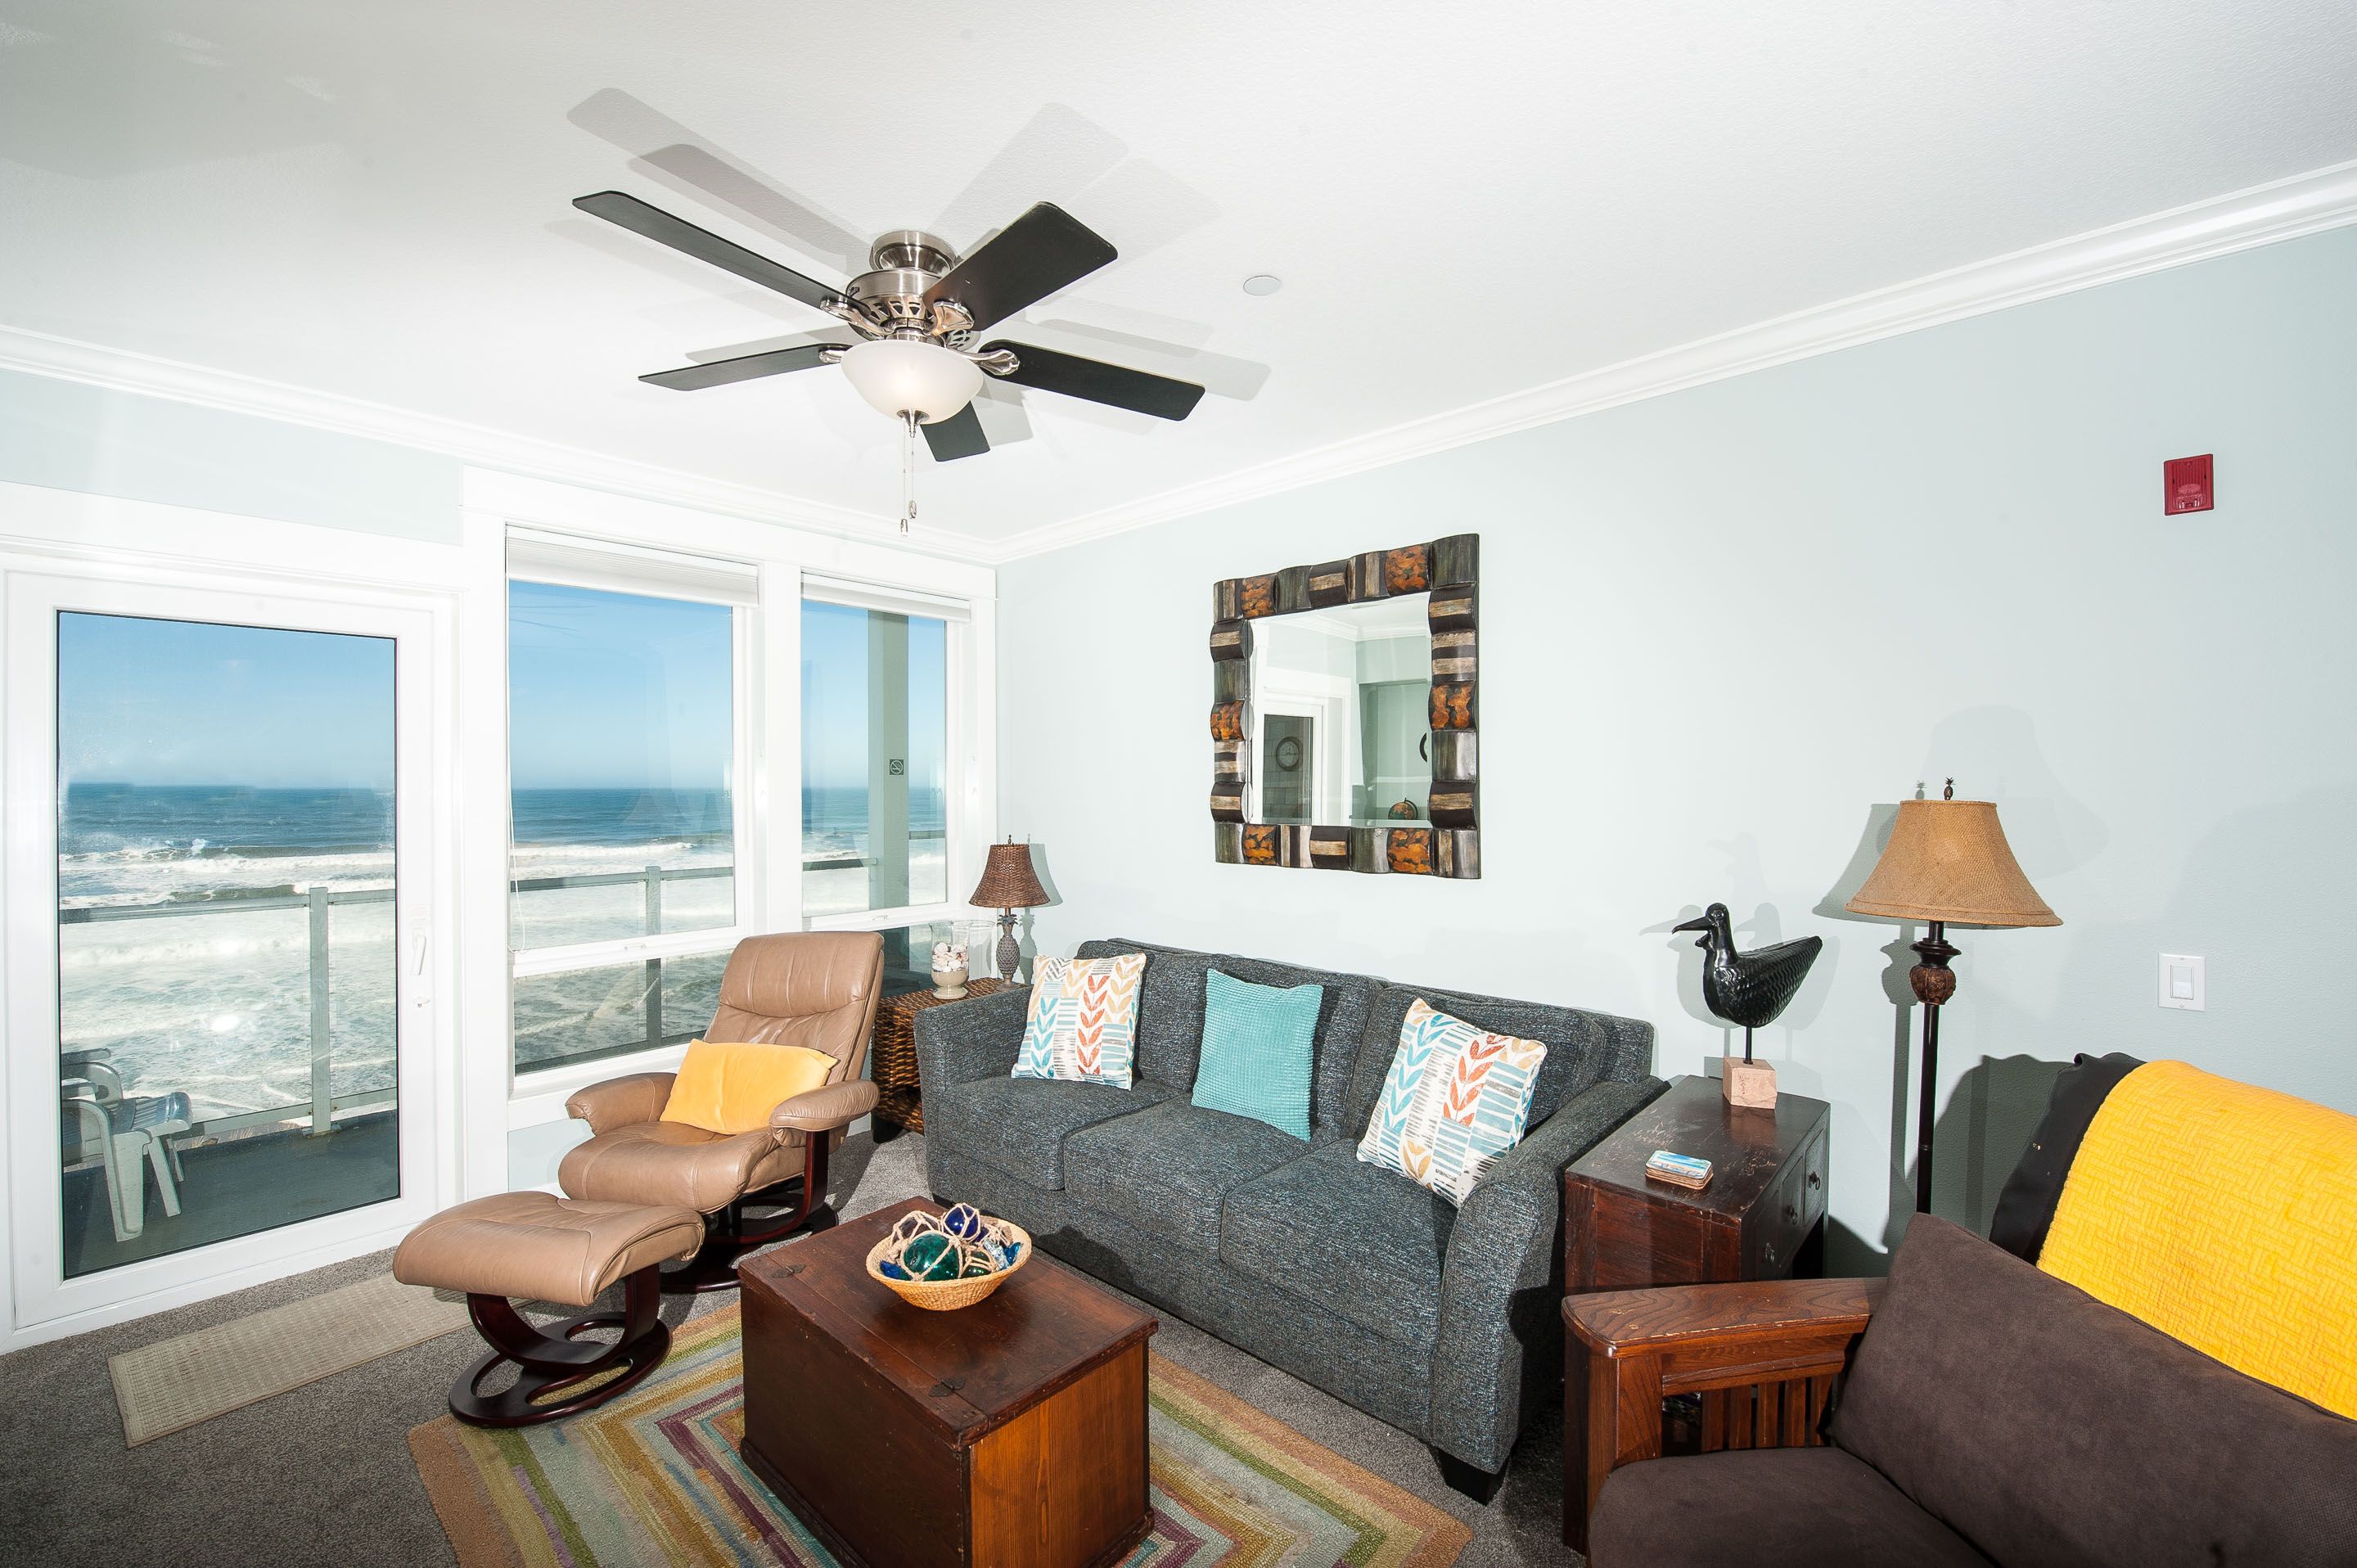 Pacific Winds - Coastal Dreams - Keystone Vacation Rentals